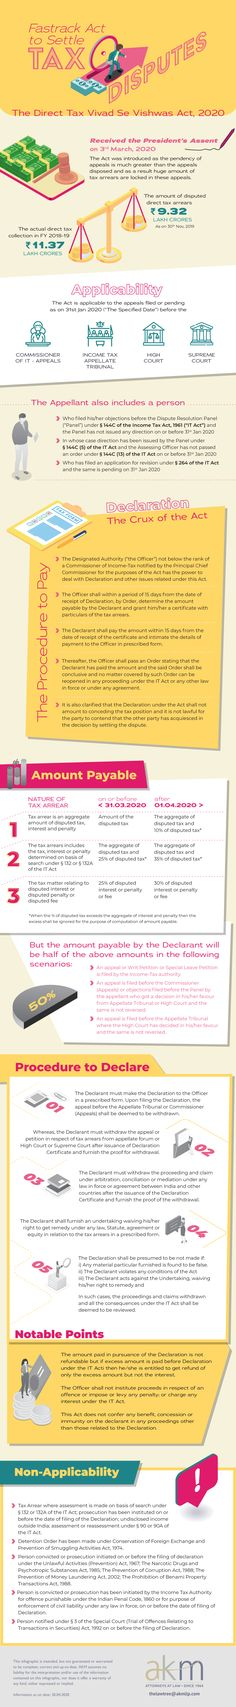 Fastrack Act to Settle Tax Disputes - The Law Tree Akm, Infographics, Acting, Infographic, Info Graphics, Visual Schedules